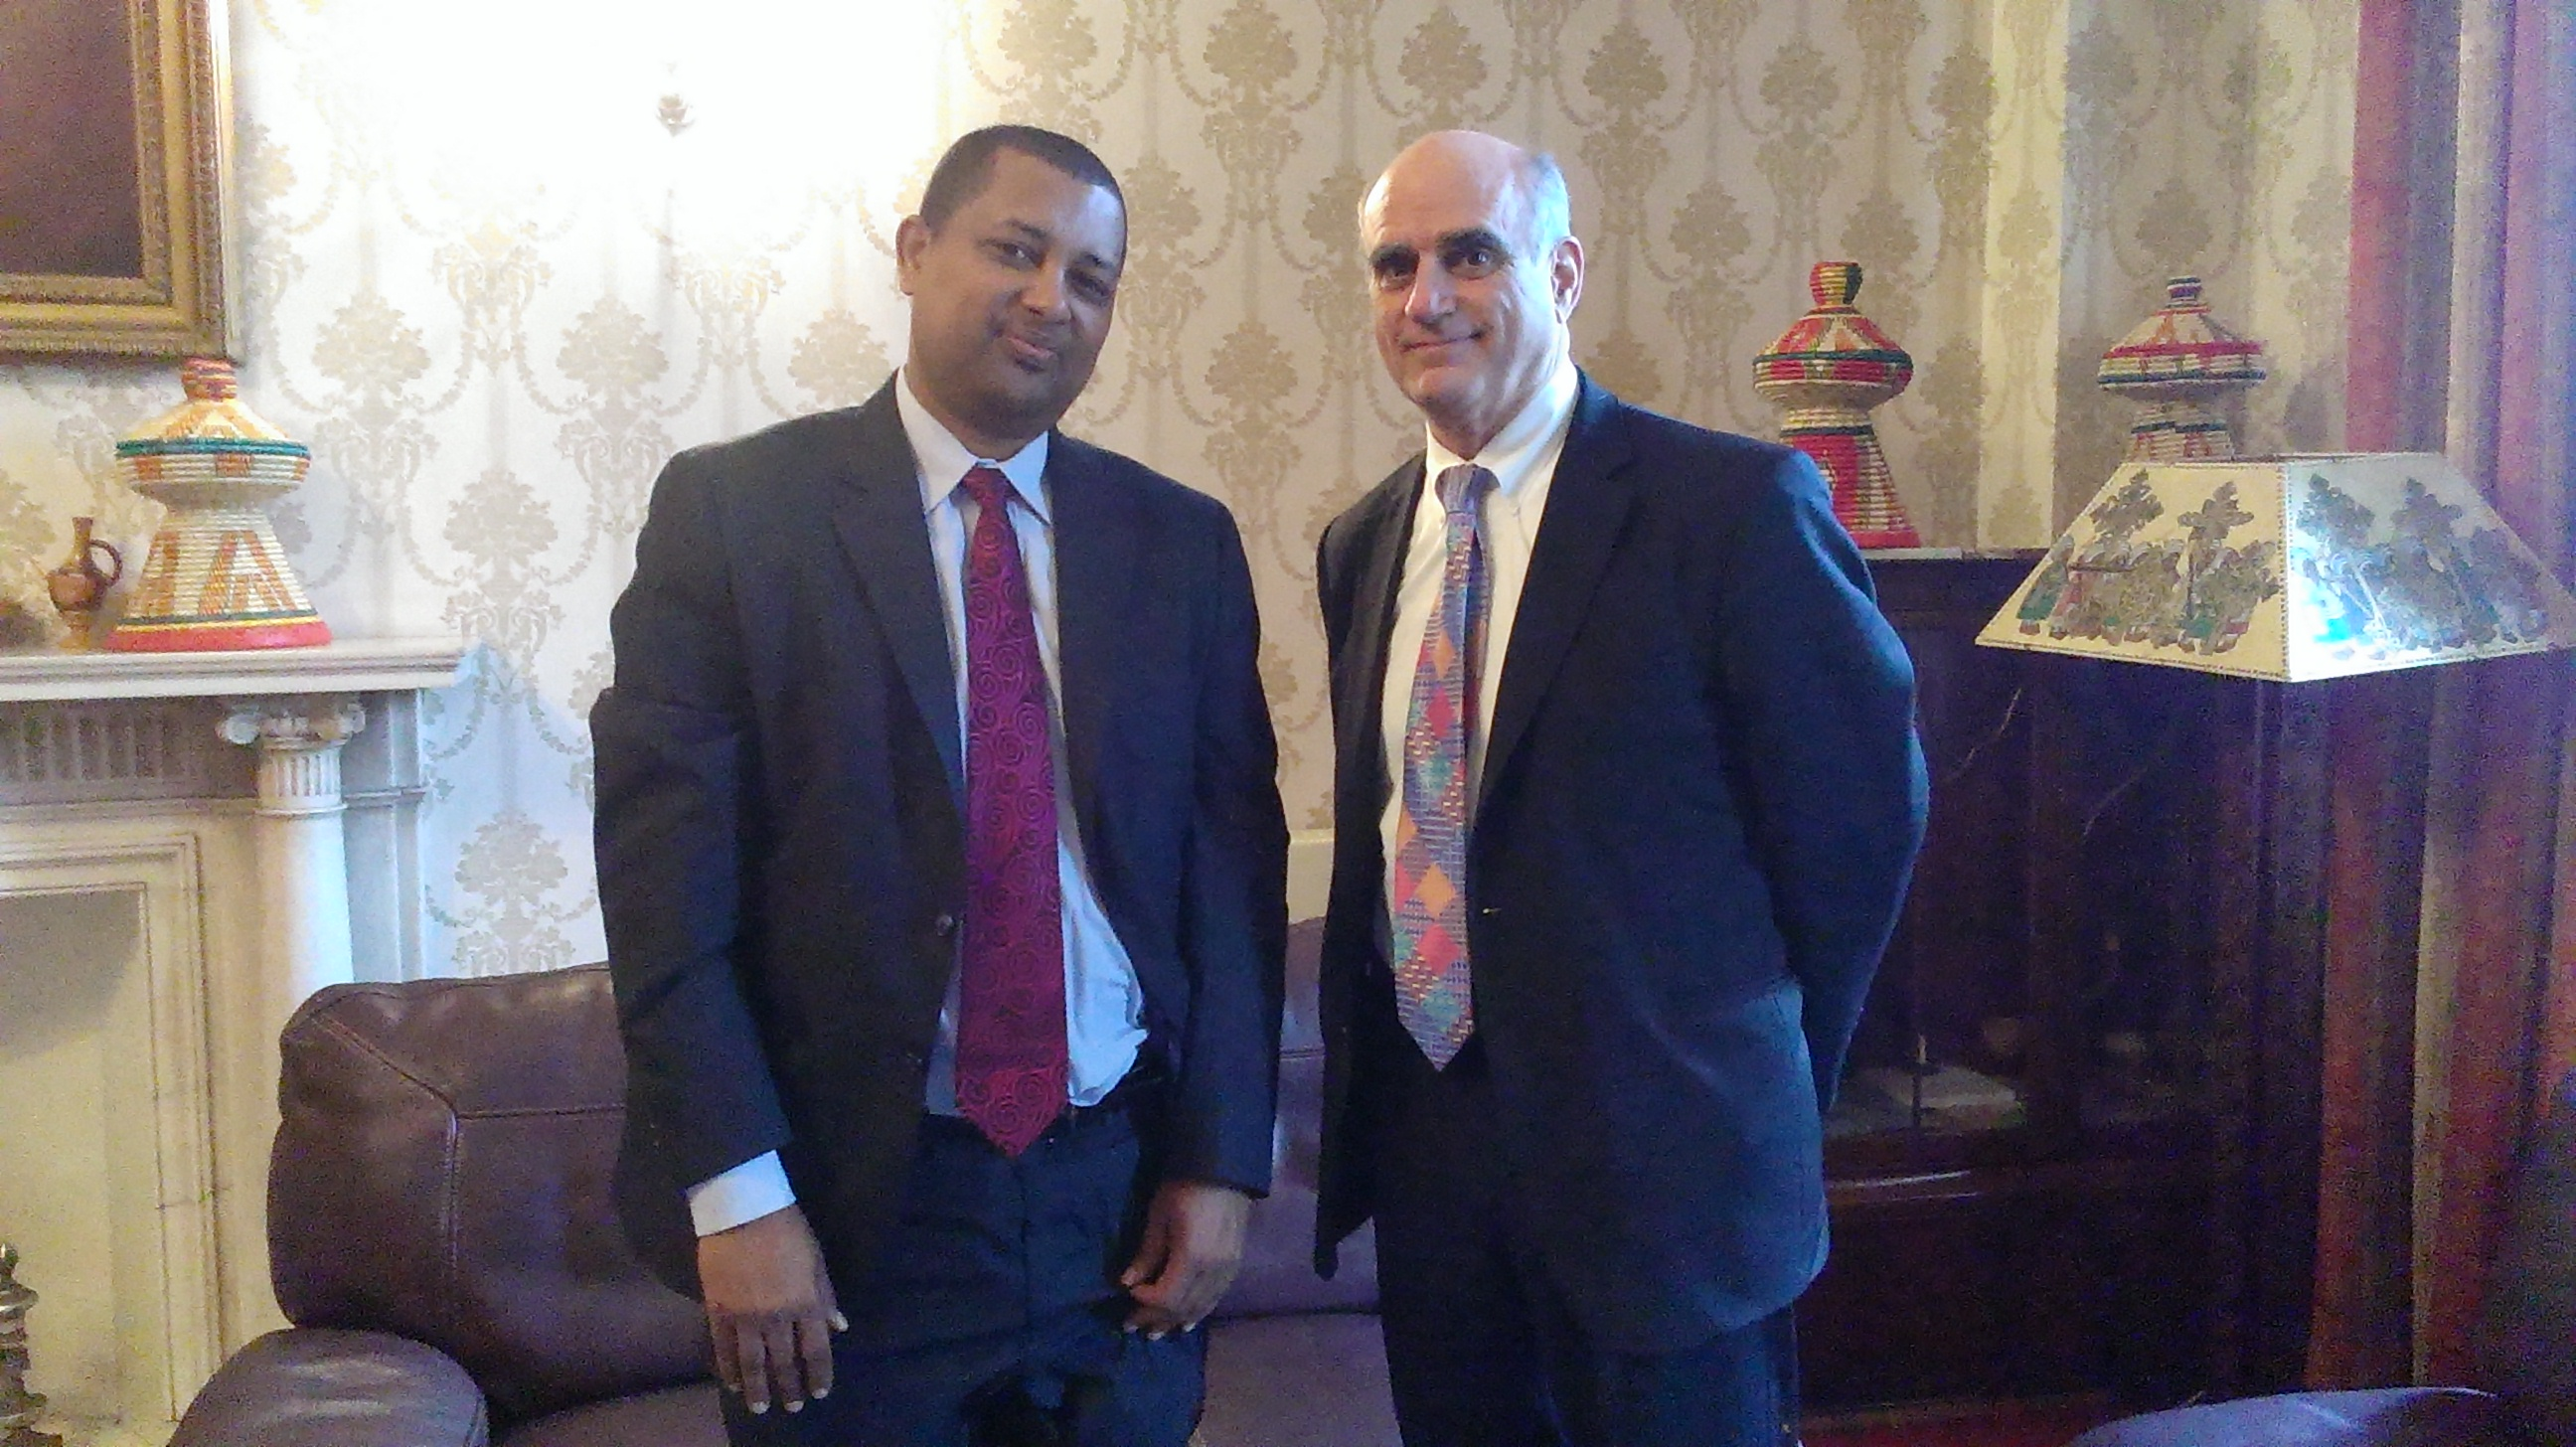 Mr. Fekadu Beyene and Dr. Stephen Connor